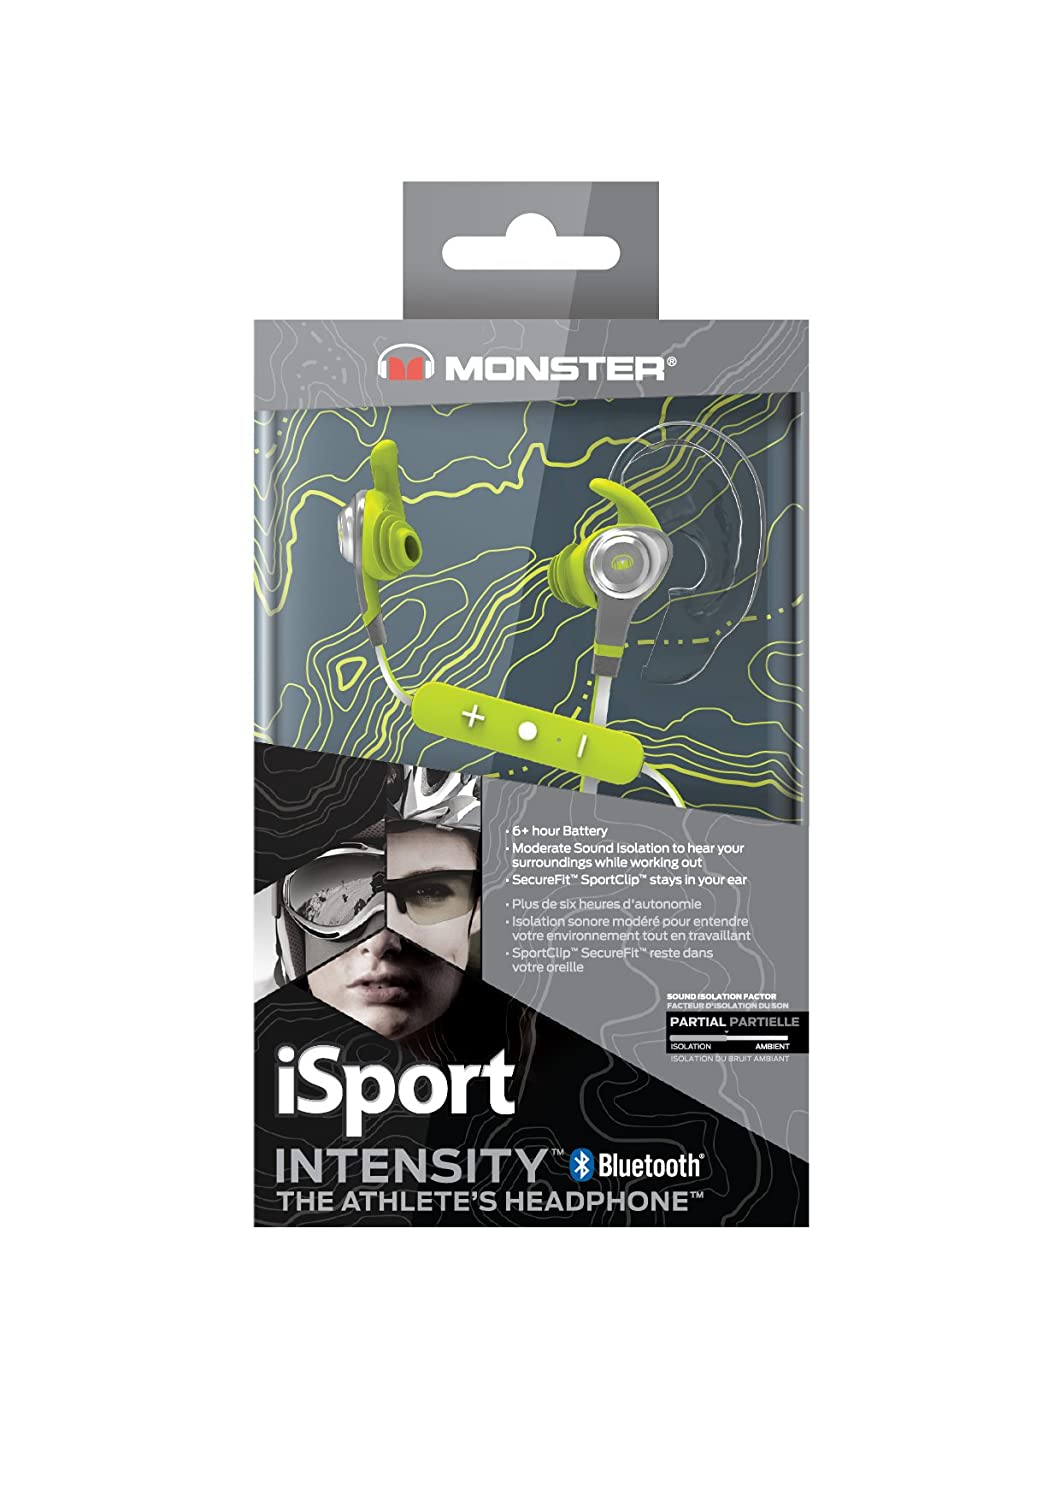 Monster Isport Intensity Bluetooth Wireless In-ear: Amazon.de ... Gute Bettwasche Wirklich Ausmacht